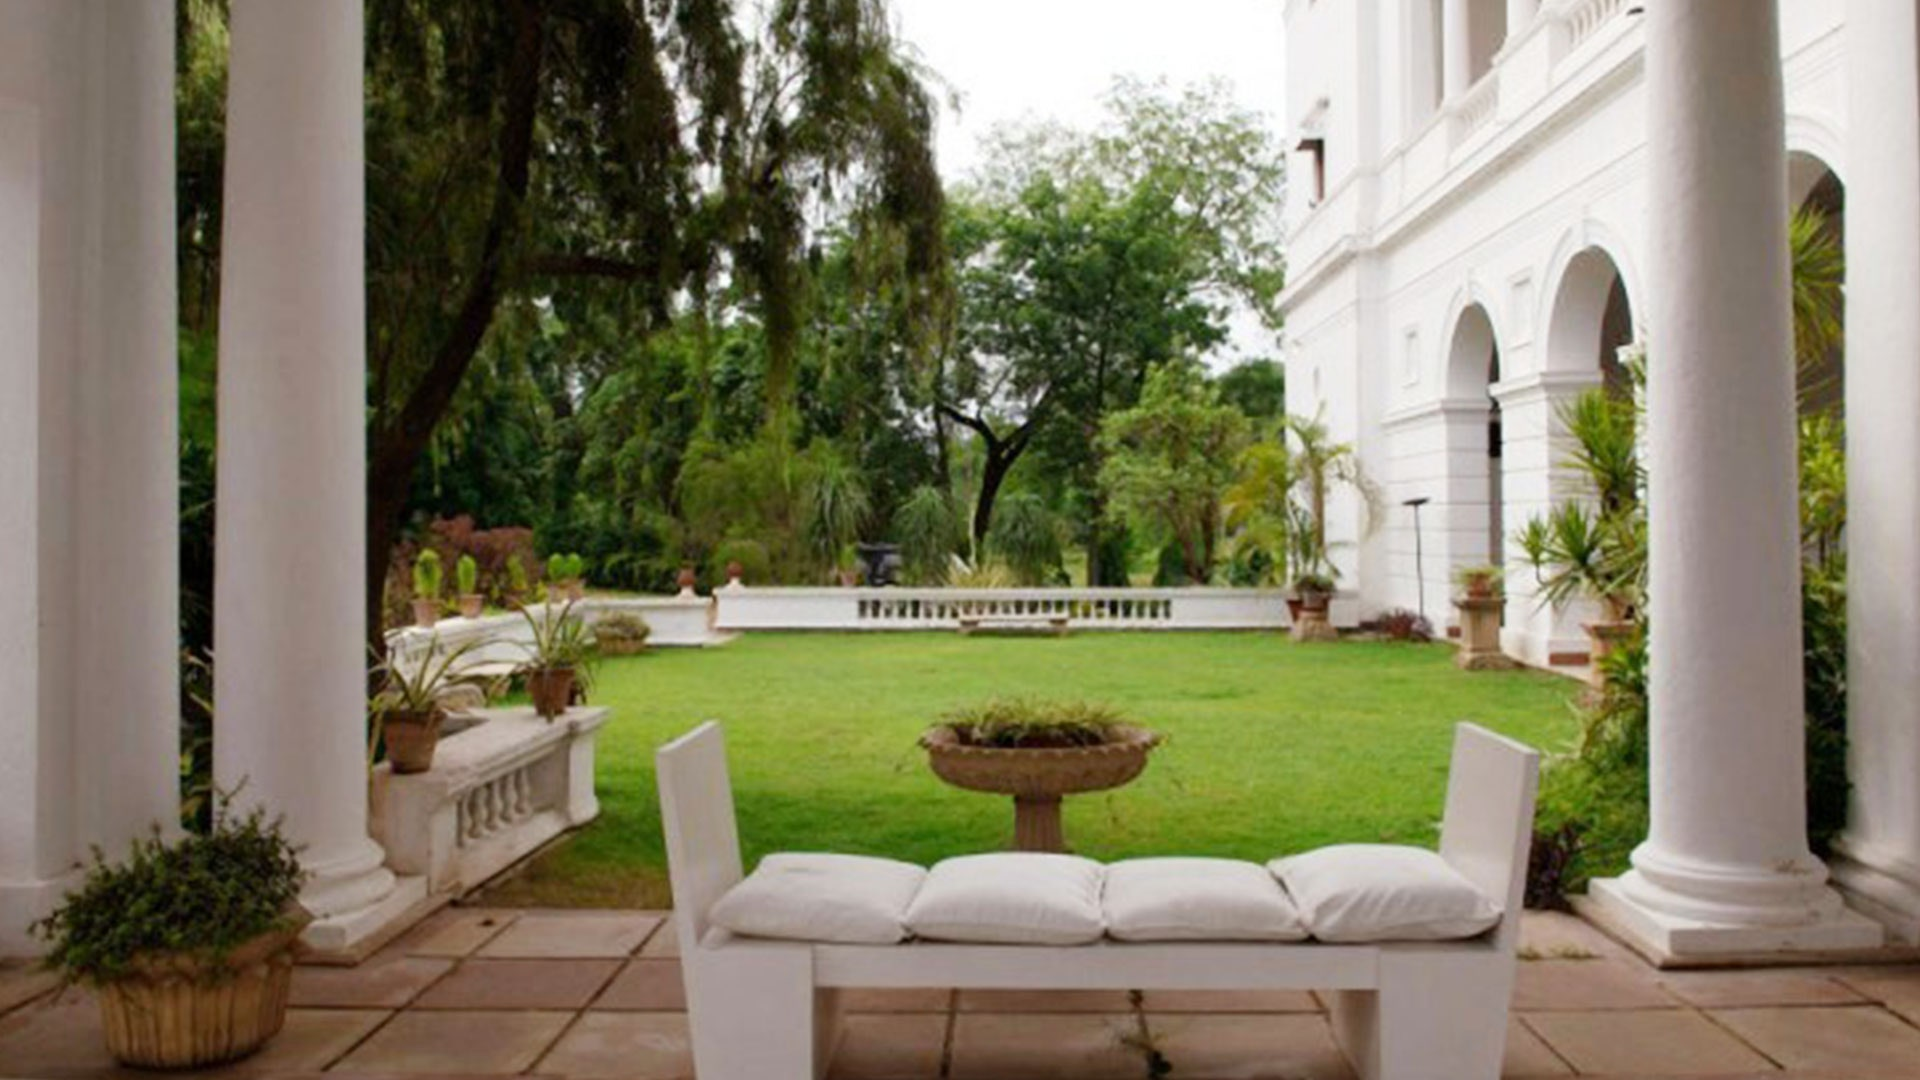 SAIF- KAREENA's 'Pataudi Palace' is no less than an elegant palace, eyes will be open seeing pictures Funny Jokes